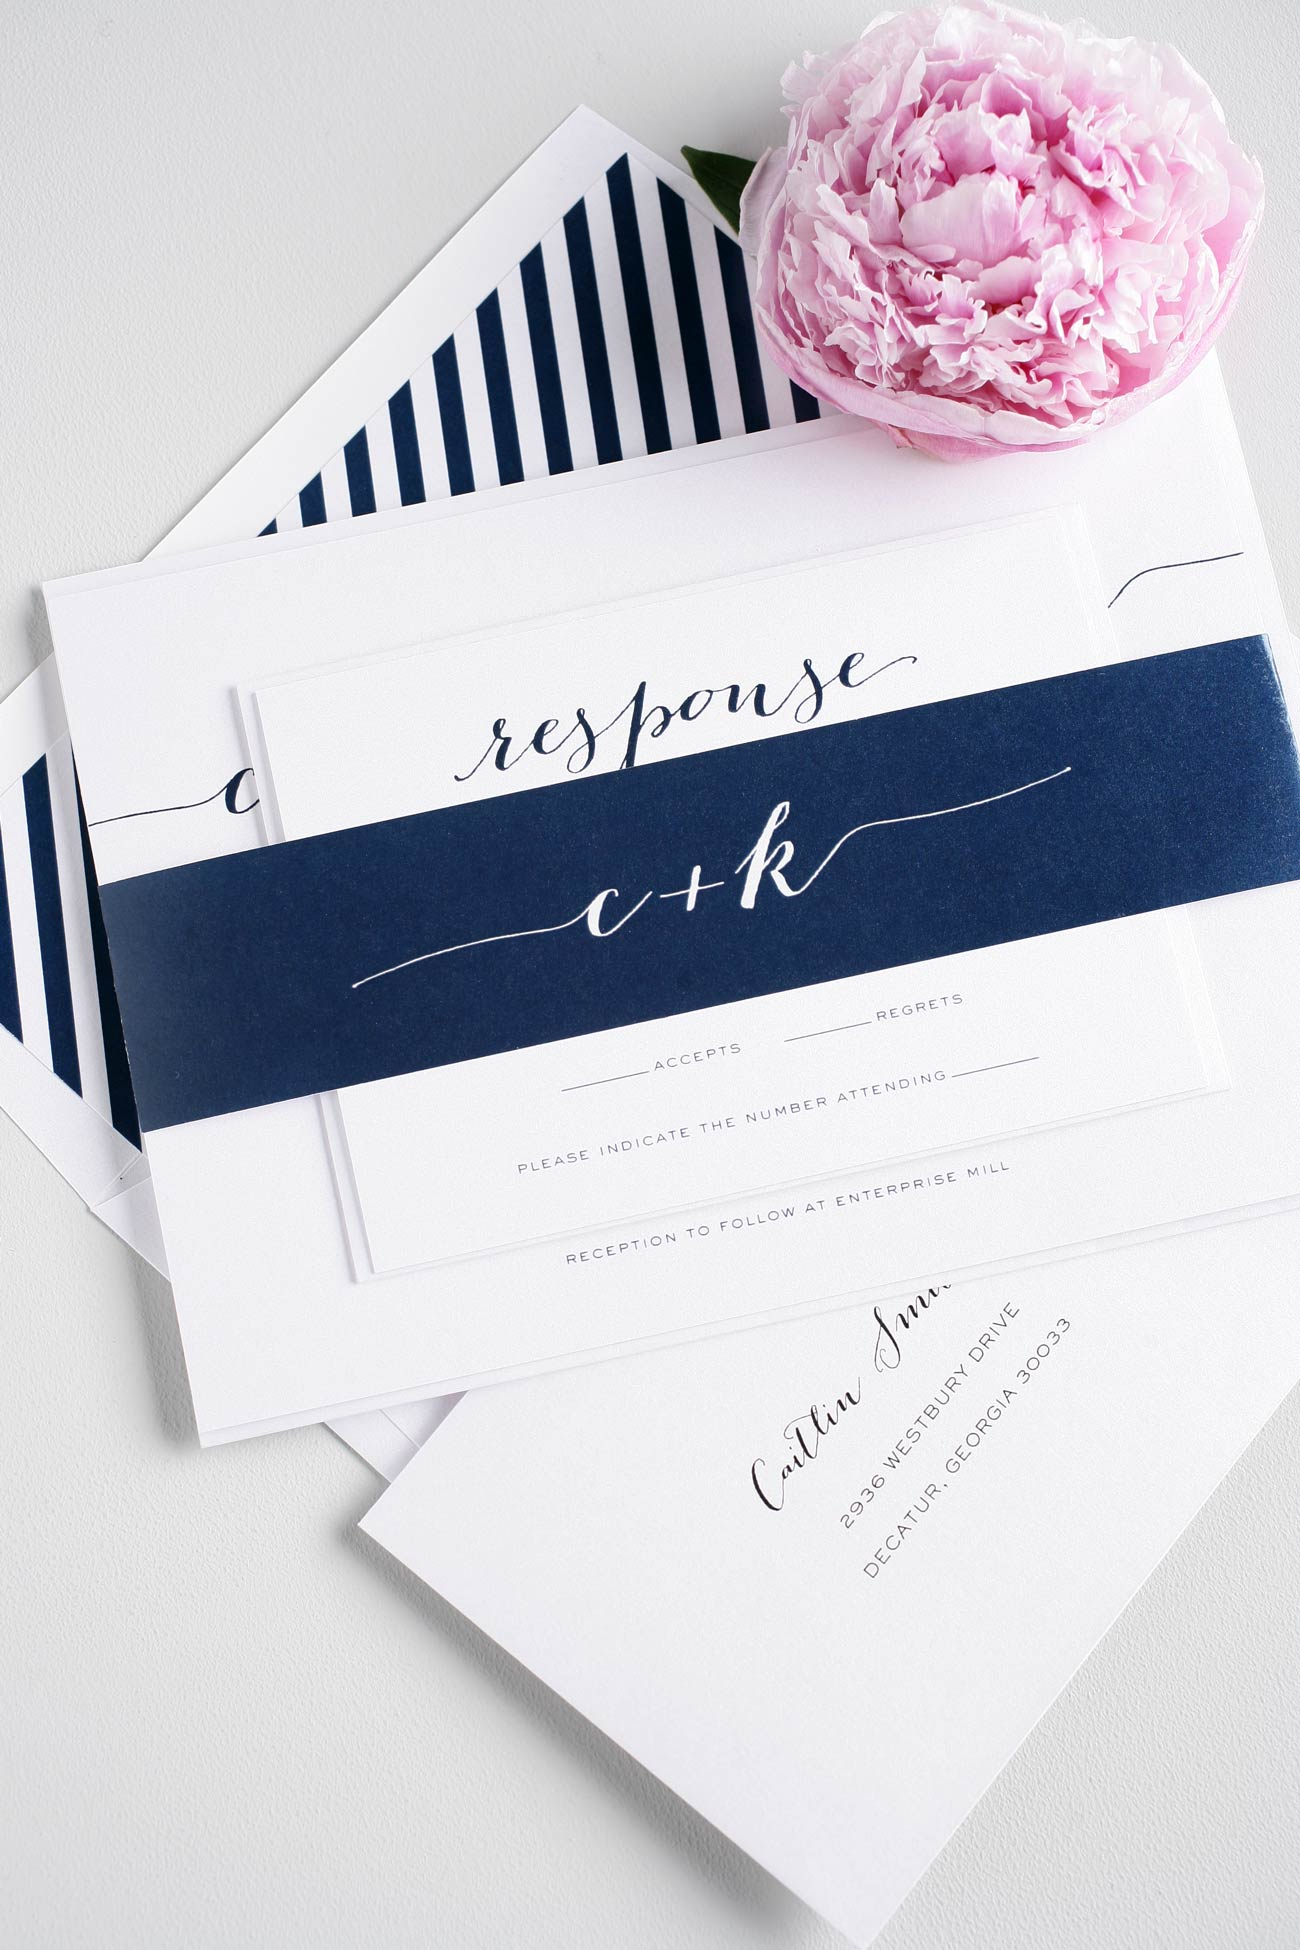 Script Navy wedding invitations with stripes